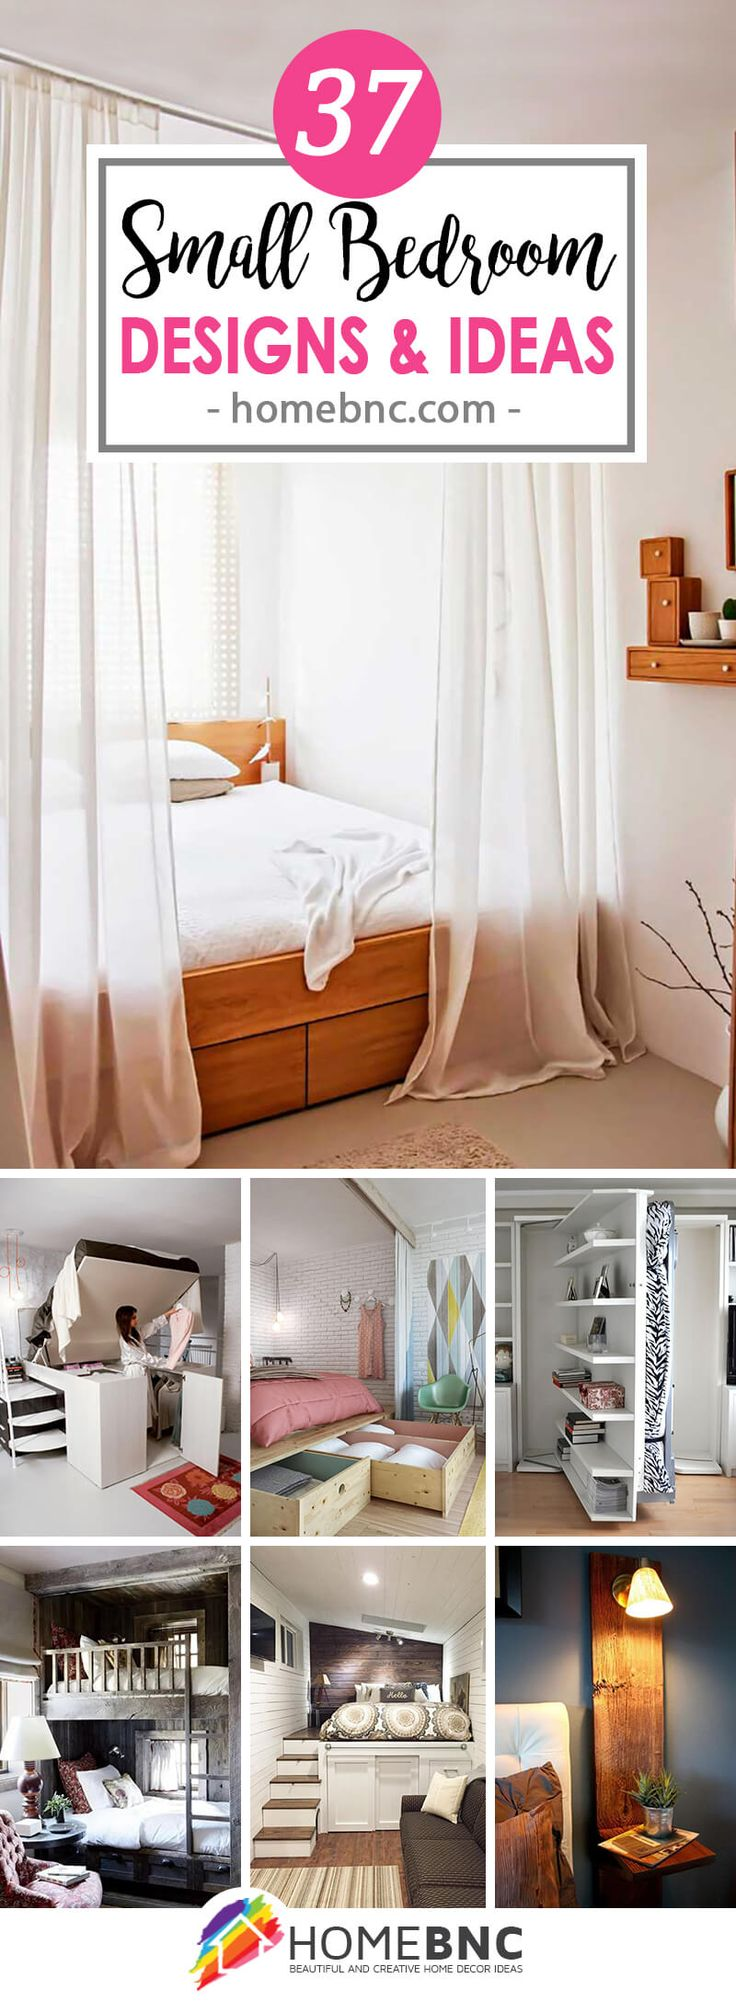 37 small bedroom designs and ideas for maximizing your small space that pop - Decorative Ideas For Bedroom